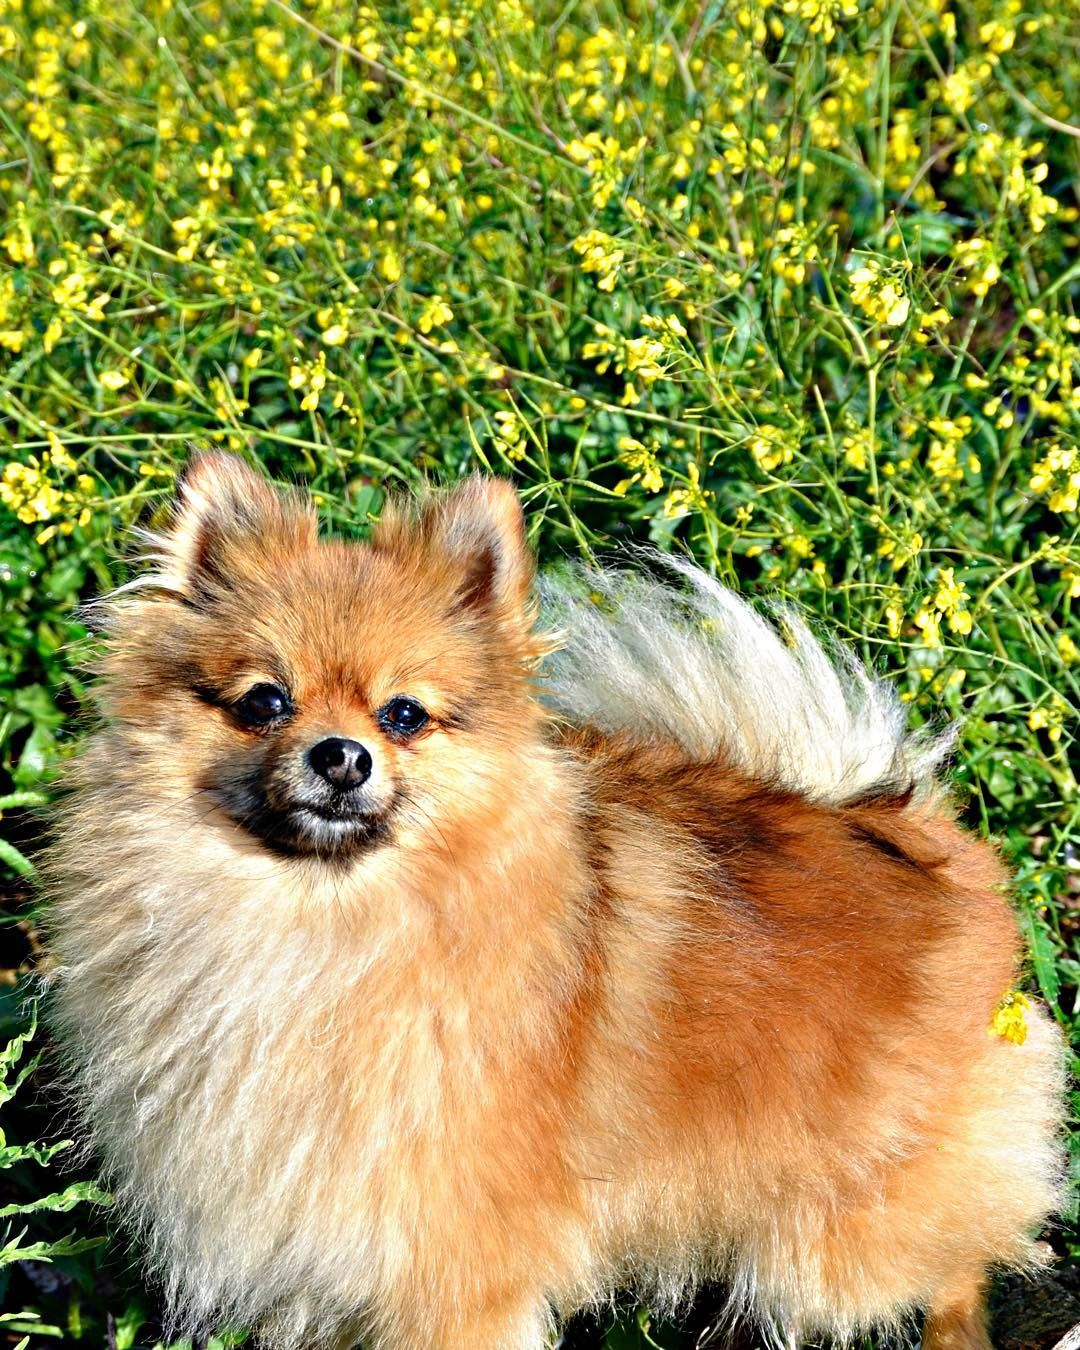 Happy thursday friends!! Tomorrow it's mom's university graduation  she's very excited and nervous  #sbspringtime @sniffandbarkens #vitjunk #outdoorpups #picsofallanimals #nature_cuties #nature #landscape #naturelovers #naturaleza #springtime #countryside #luludapomerania #pomeranian #7pets_1day #igworldclub_pets #my_pet_feature #excellent_puppies #igwoofs #dogsaremytherapy #dogsitting #dog_of_instagram #dogsamazingworld #dogsofinstaworld #my_pet_feature #royalcanin_es  Here's my…